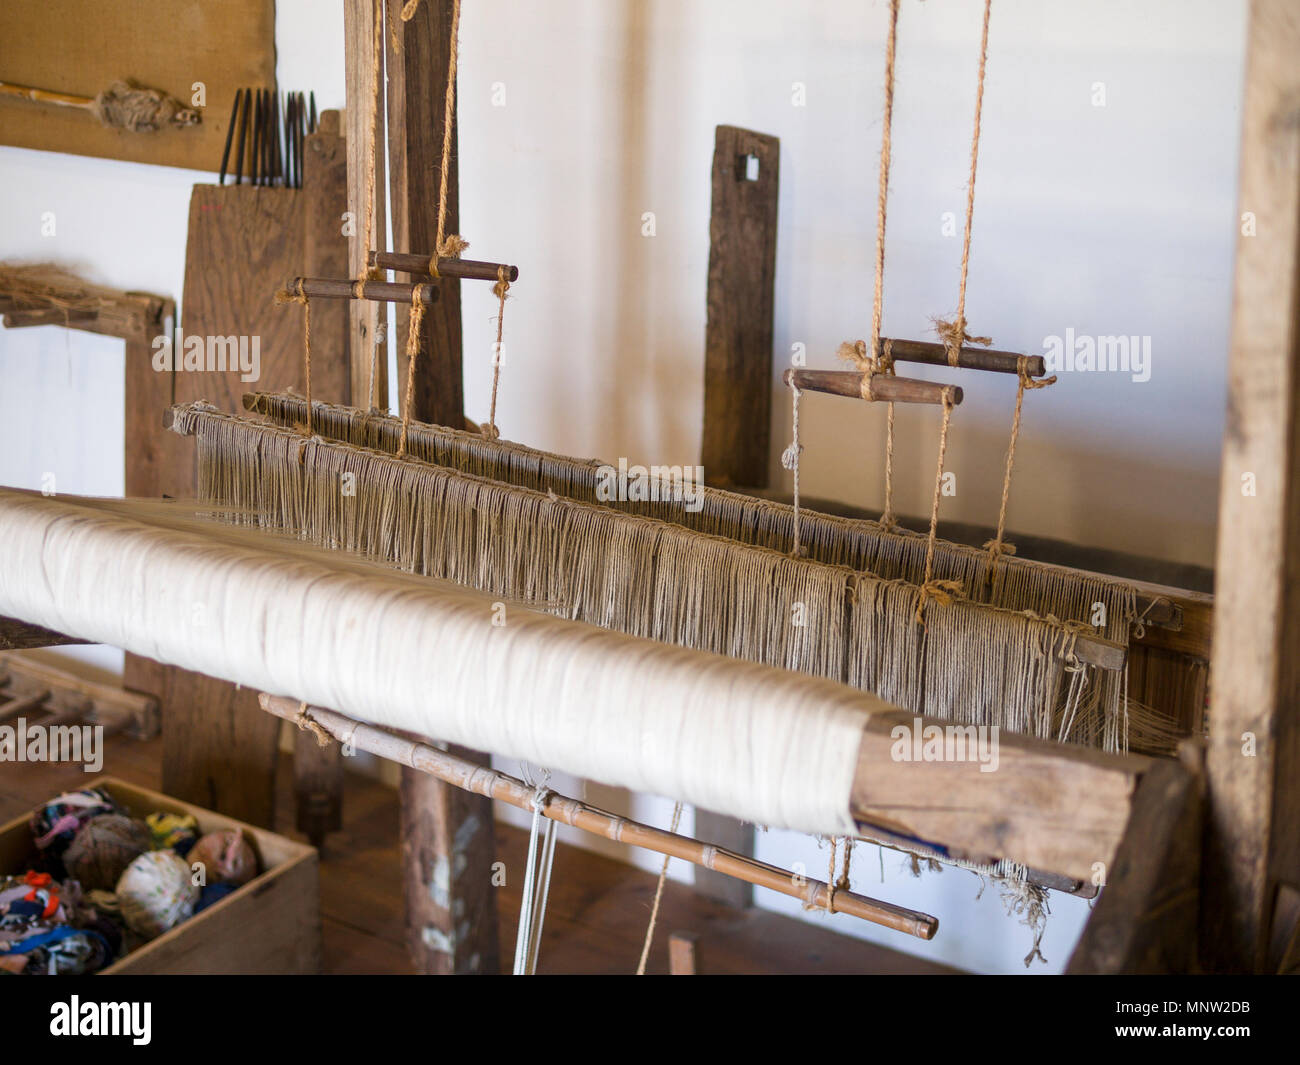 Detail of a Cloth making Loom: A hand operated wooden loom on display in the museum. - Stock Image